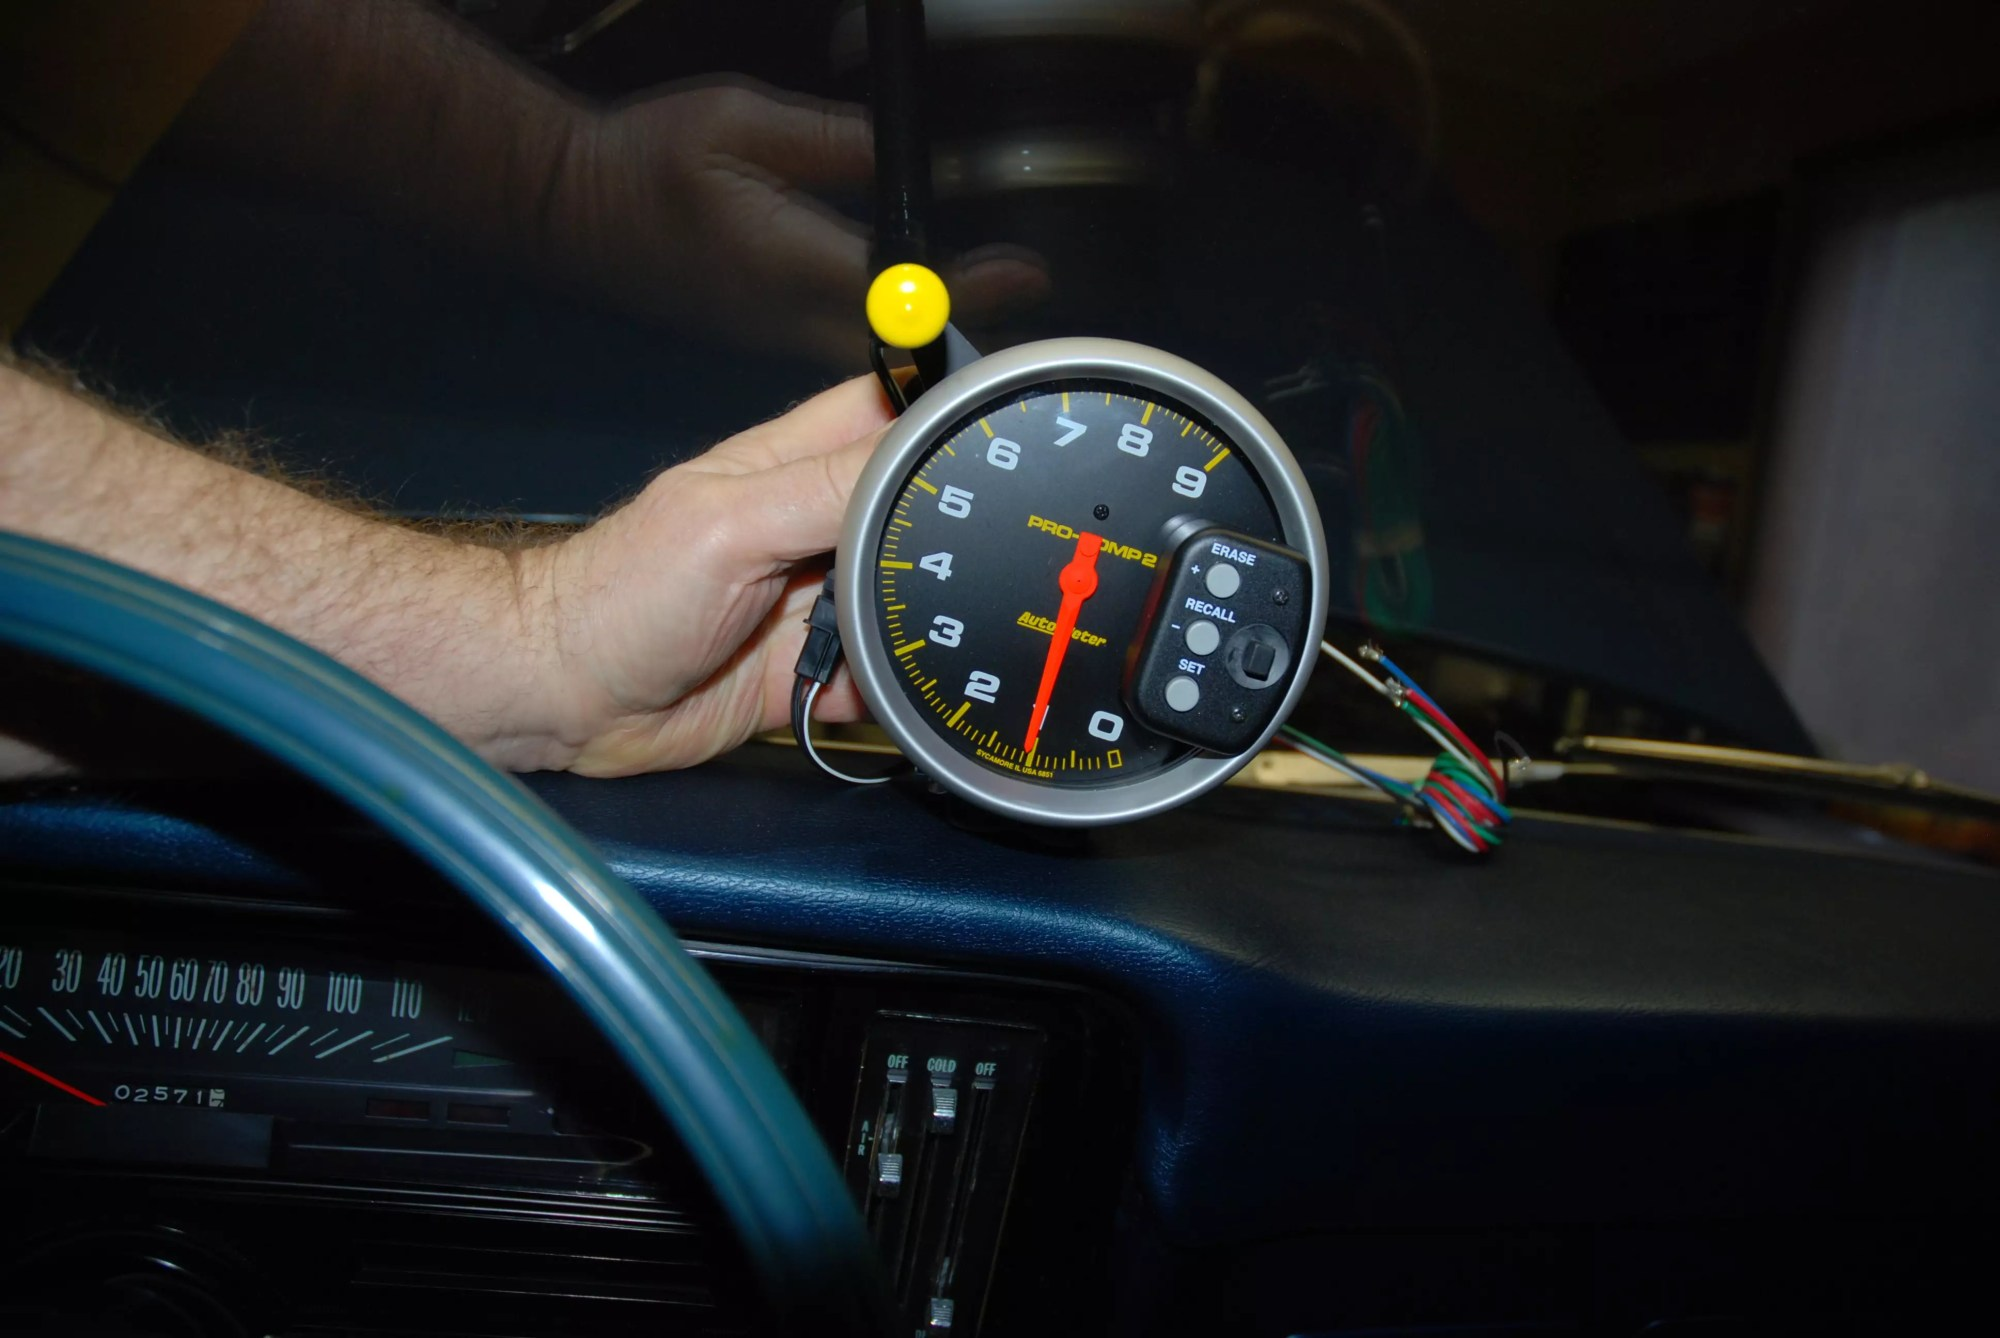 hight resolution of when mounting the tach it s a good idea to try it in various mounting locations in the car here we ve tried the tach right on the dash and also on the